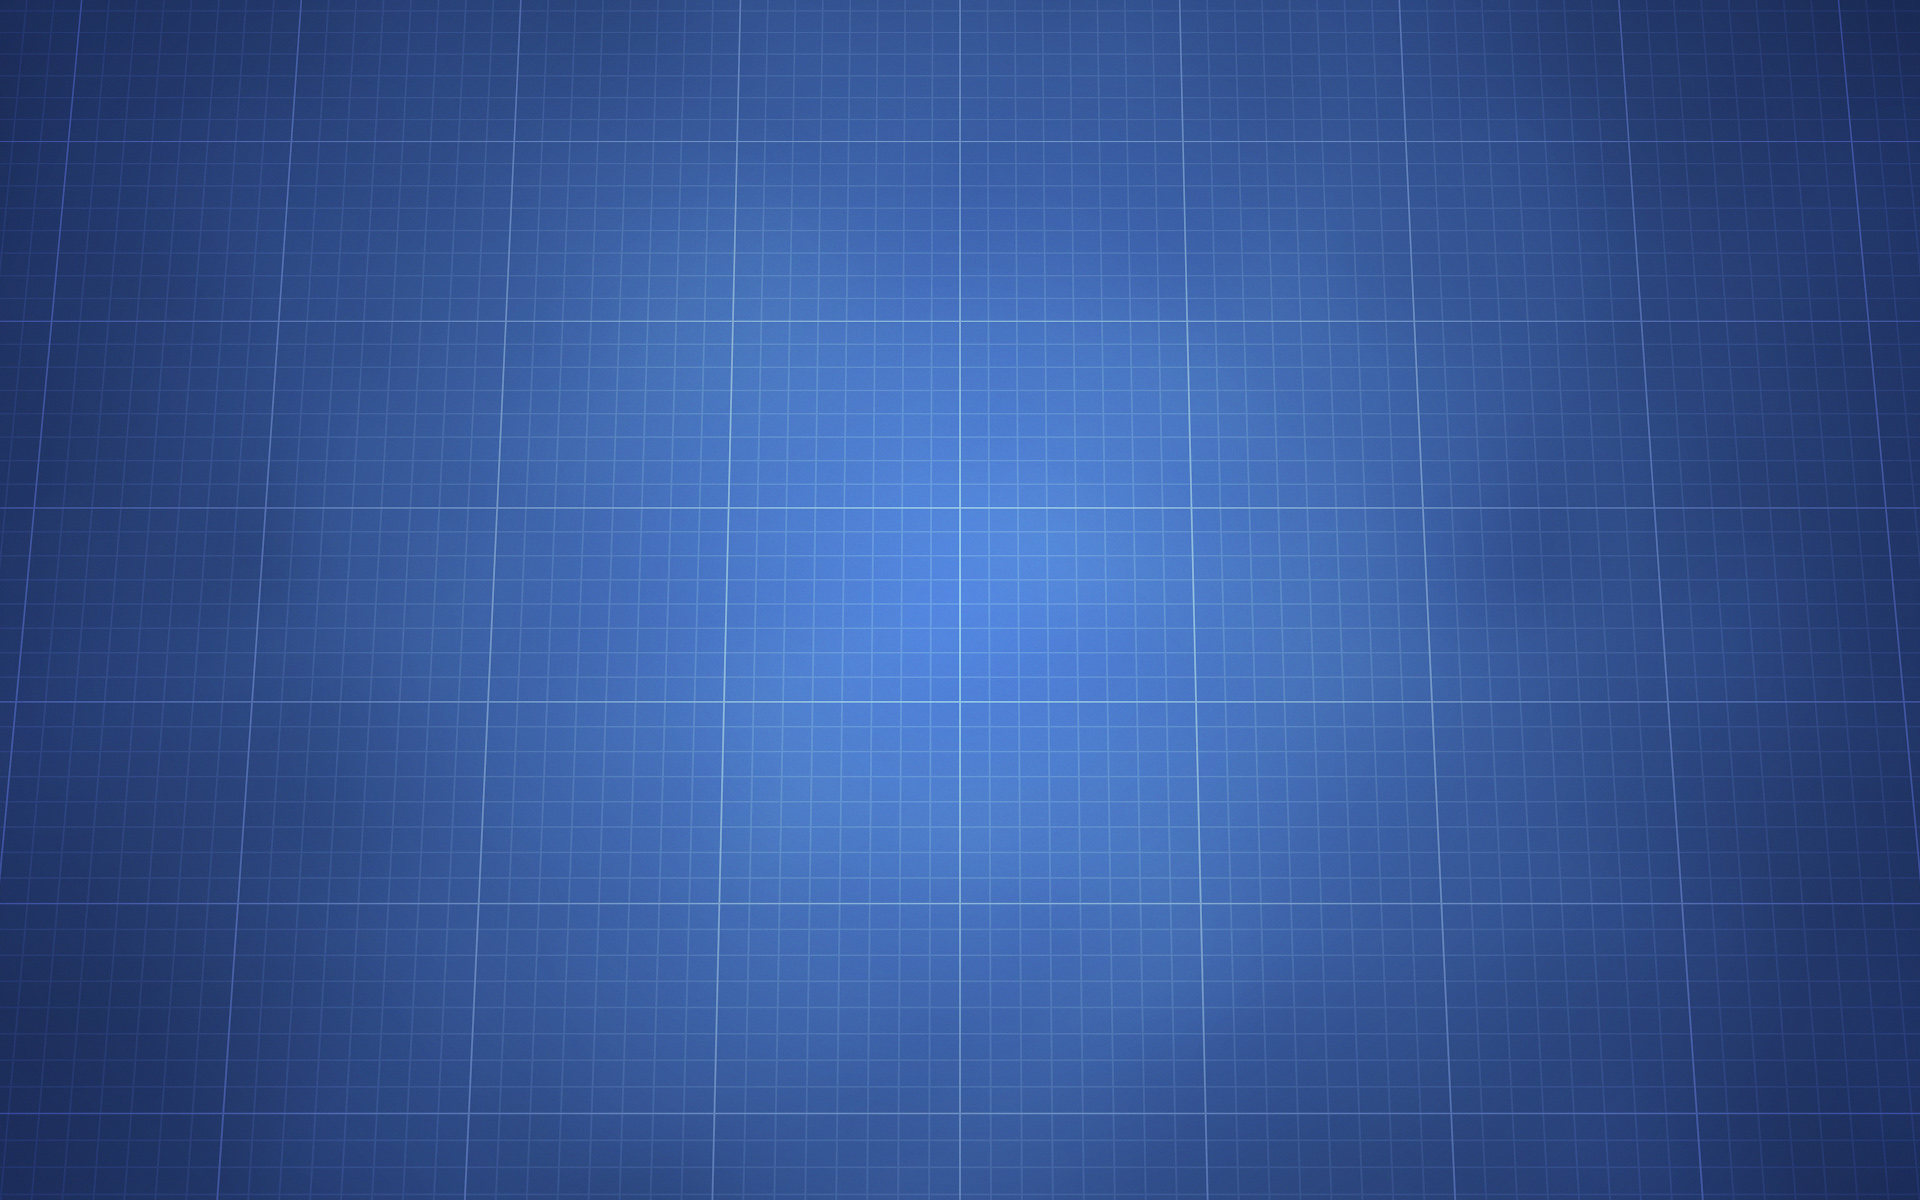 Blueprint best background full hd1920x1080p 1280x720p hd blueprint best background full hd1920x1080p 1280x720p hd wallpapers backgrounds desktop iphone android free download malvernweather Gallery